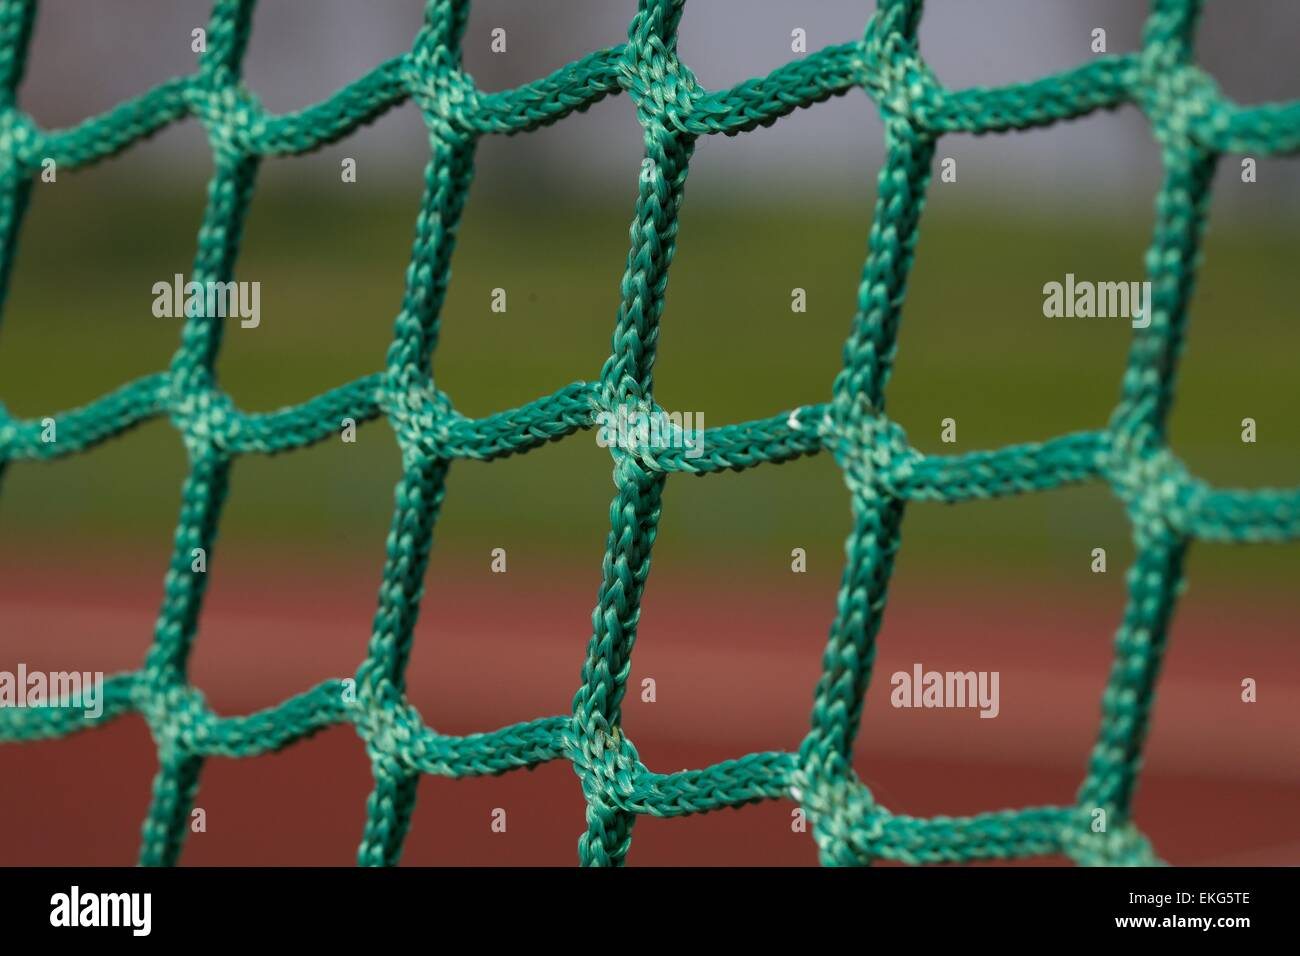 close up shot of green netting on a sports field - Stock Image